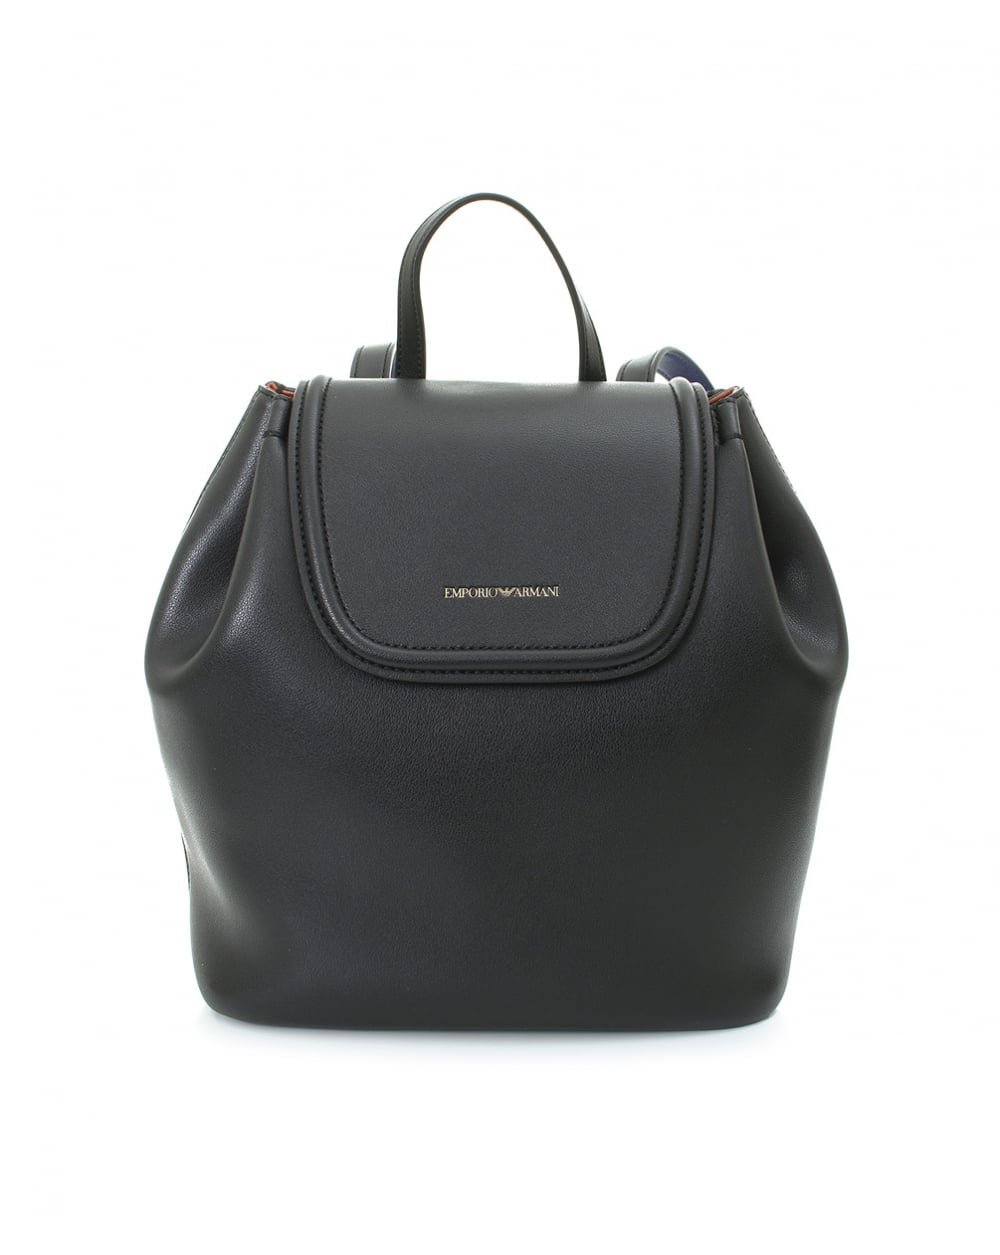 Emporio Armani Women's Eco Leather Backpack Black/Leather/Royal Blue One Size